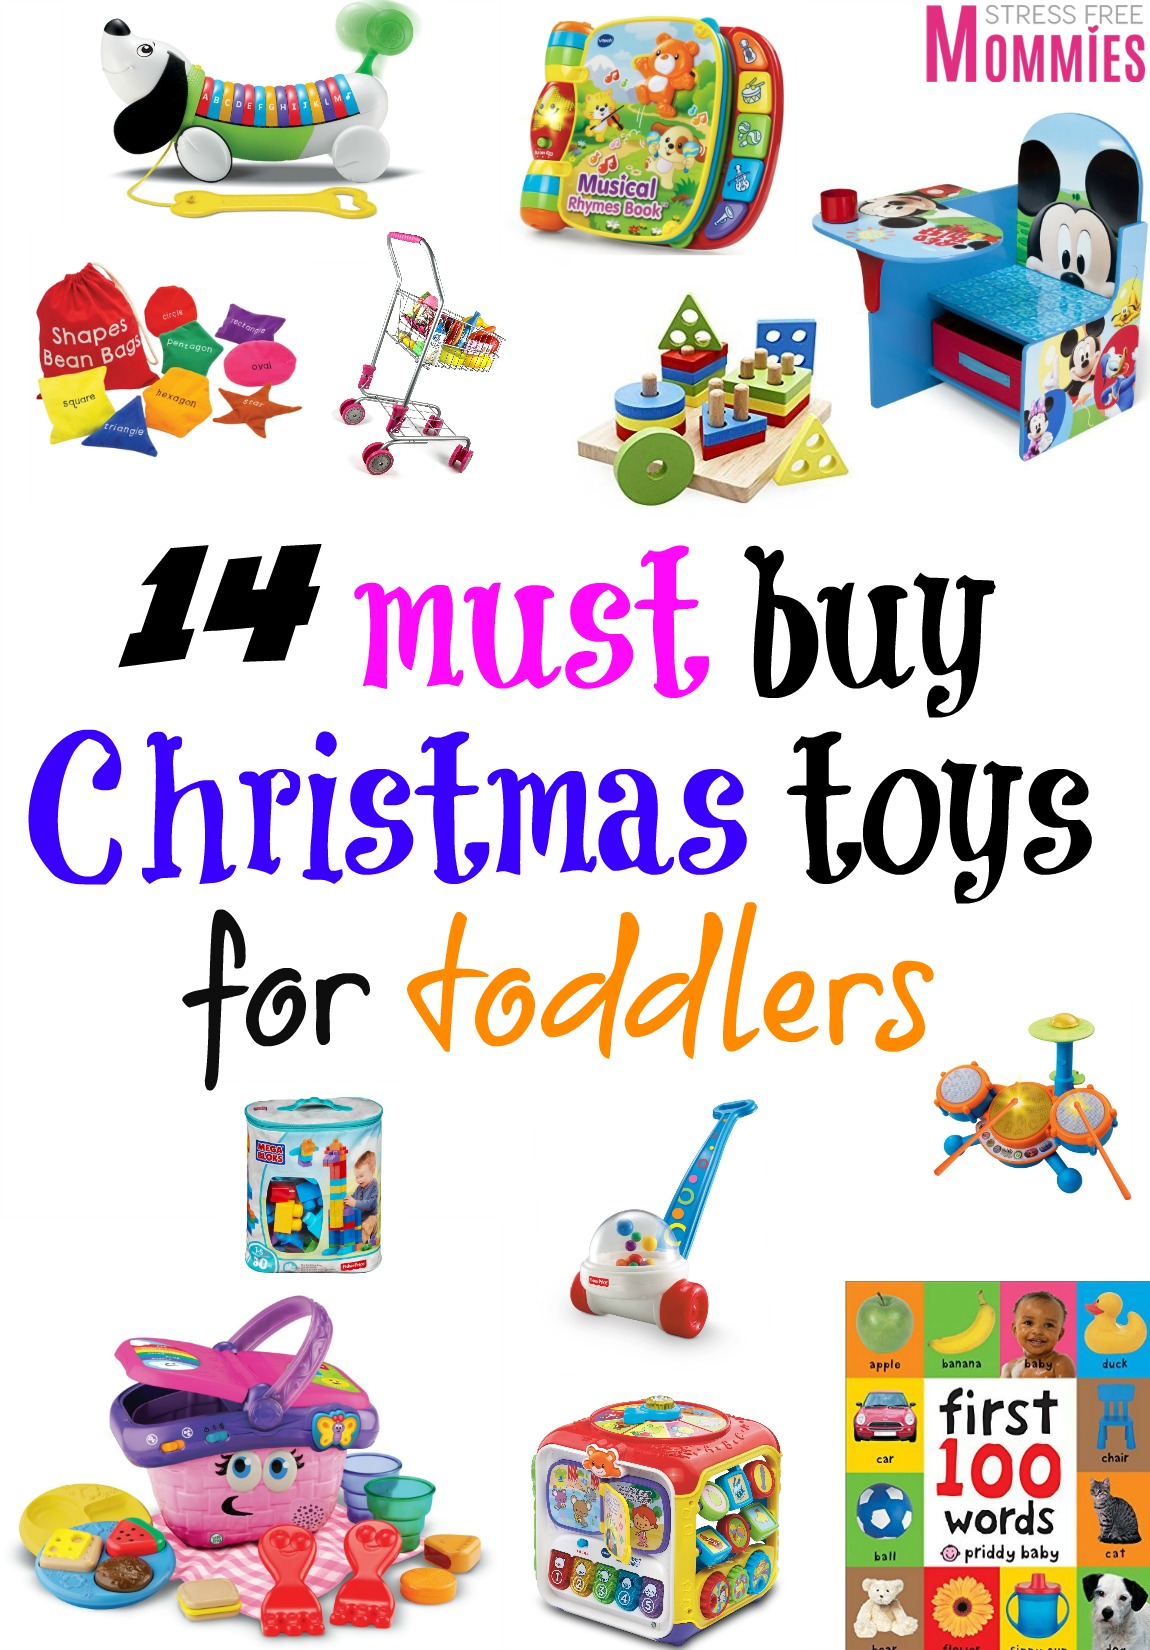 14 fun must buy Christmas toys for toddlers